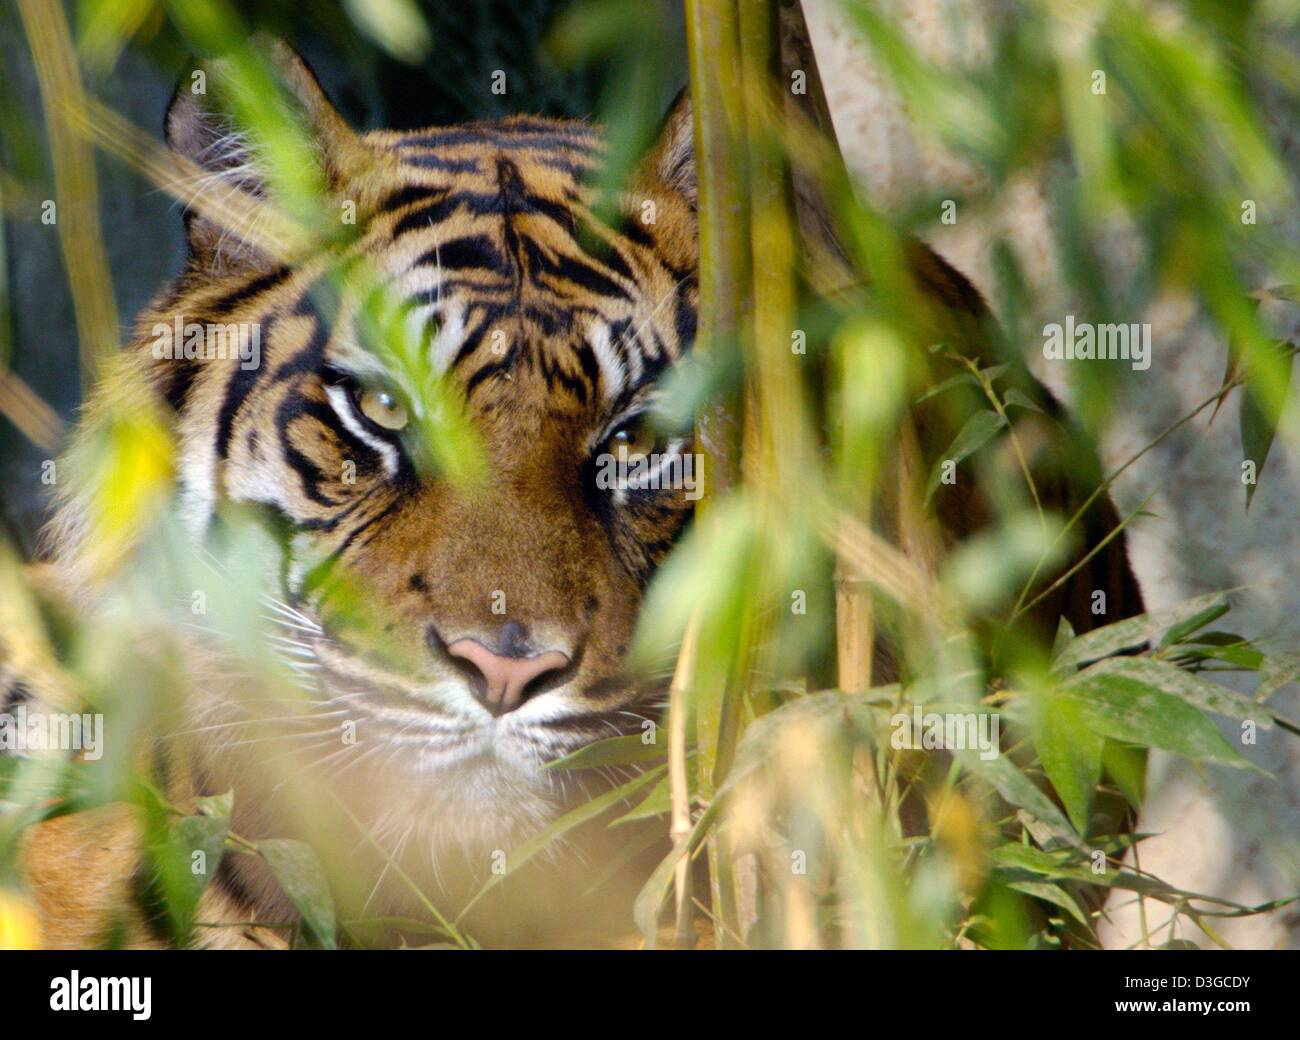 (dpa) - A tiger hides in the underbrushs in its enclosure in the zoo in Frankfurt, Germany, 13 October 2004. In - Stock Image